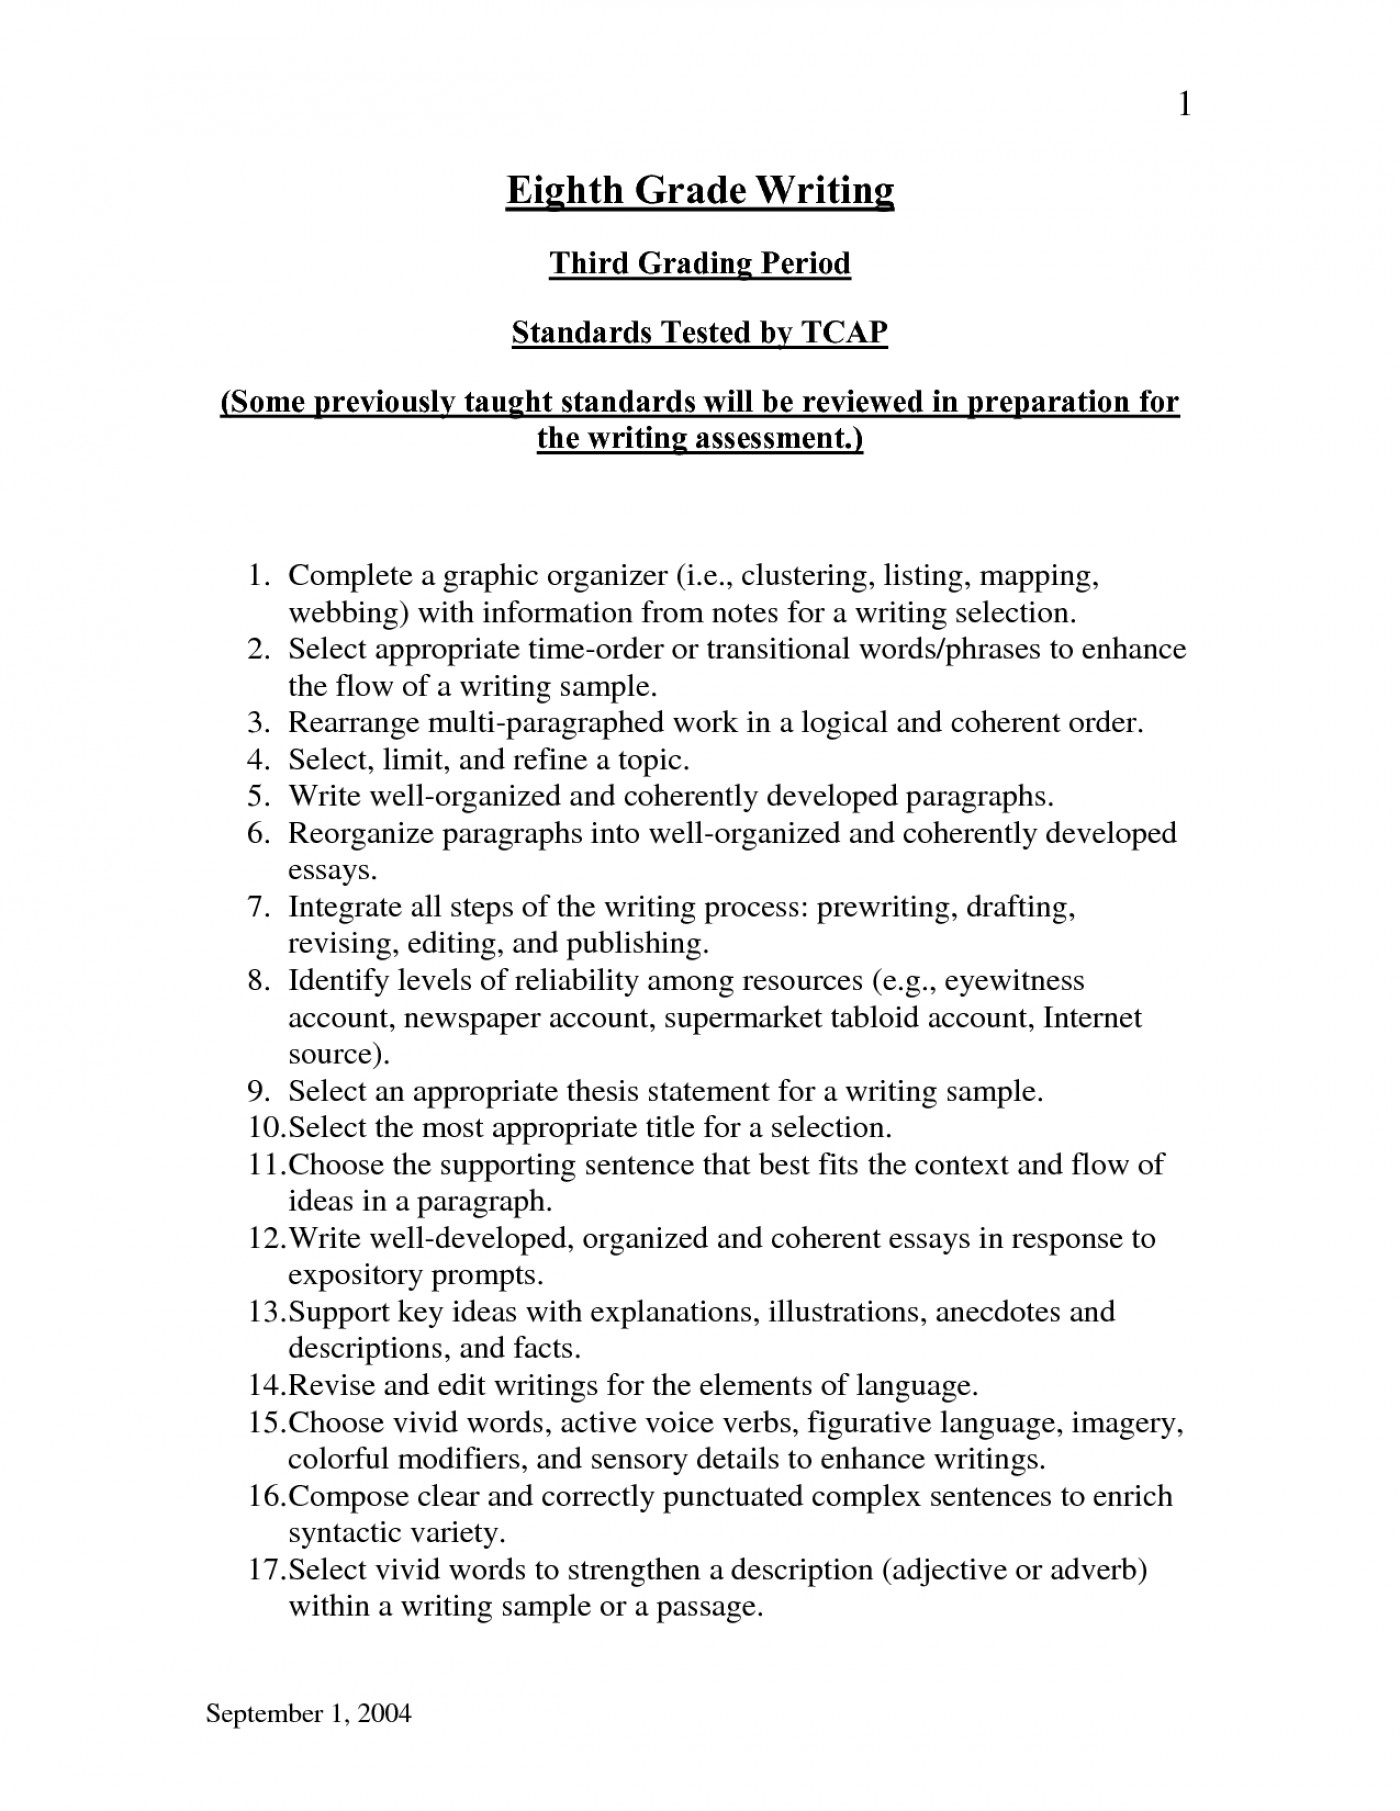 001 Expository Essay Writing Prompts For High School 1088622 Topics Awesome 7th Grade Examples College 4th 1400